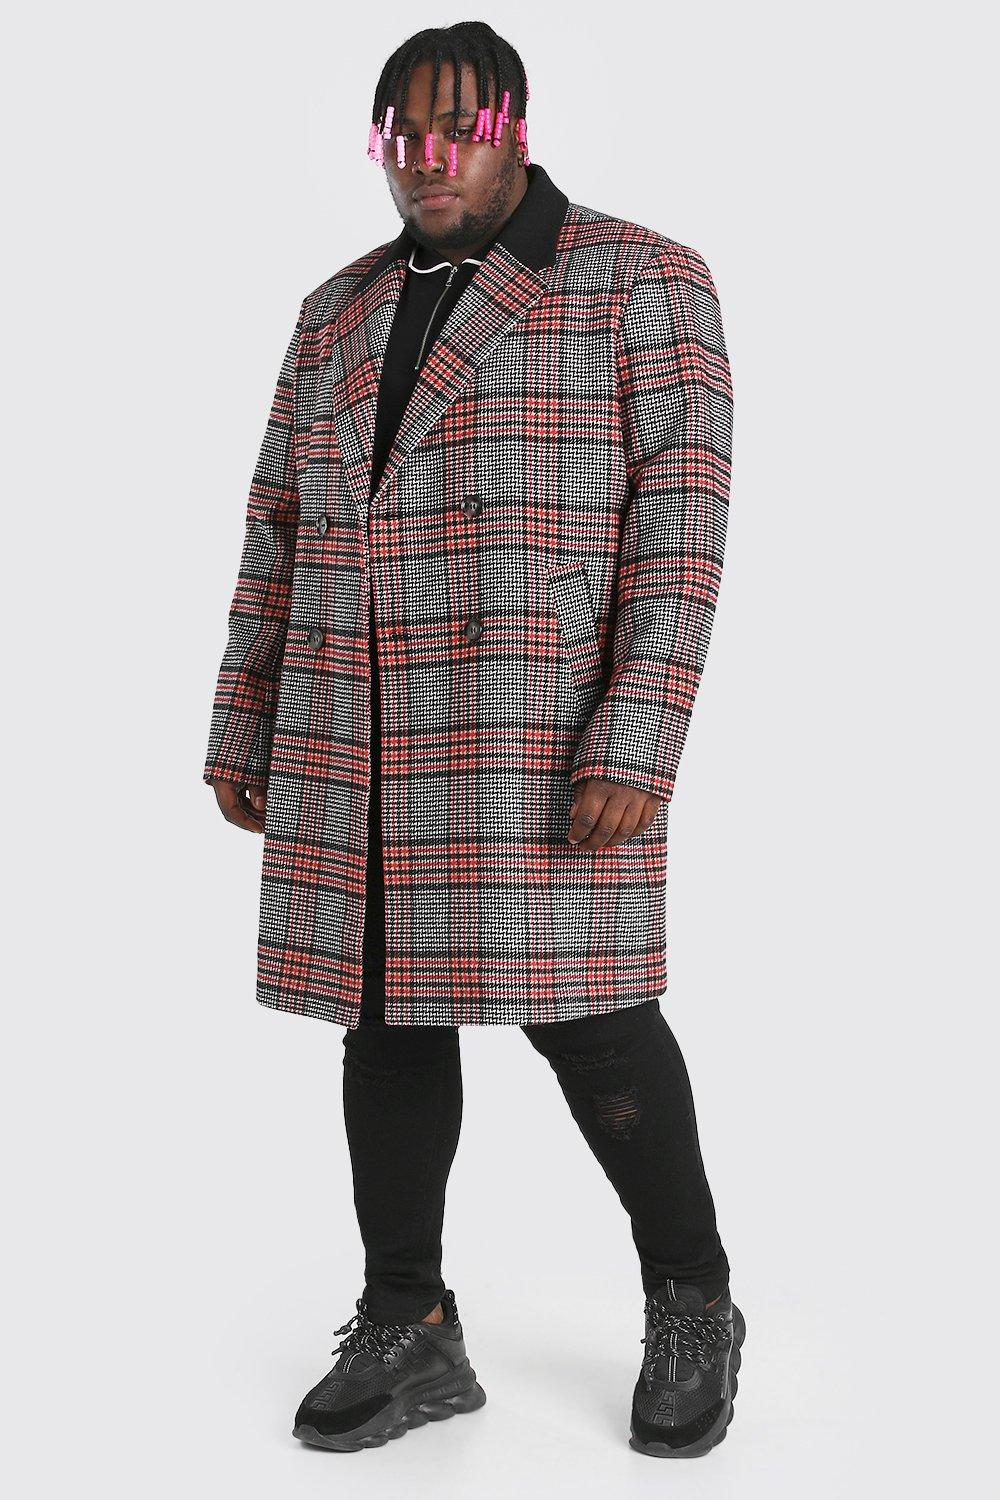 Men's Vintage Jackets & Coats Mens Plus Size Double Breasted Overcoat - Red $63.00 AT vintagedancer.com